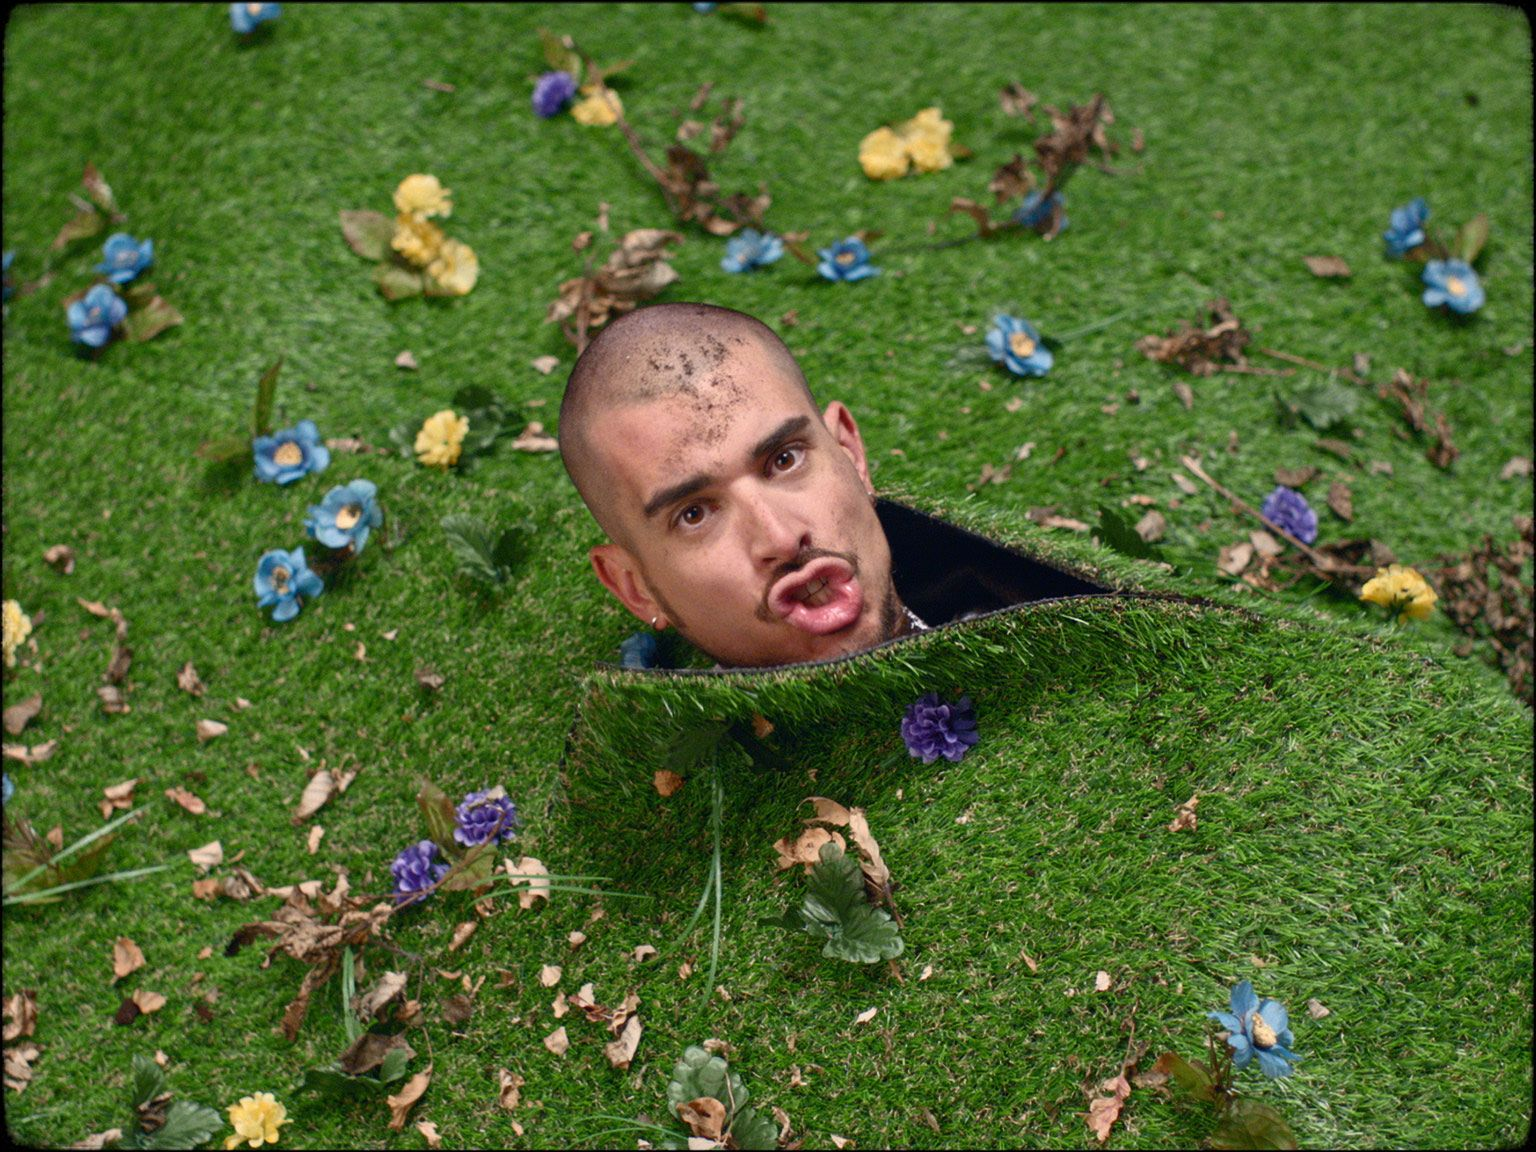 rapper Koriass head poking out of fake grass in music video 5 à 7 filmed by Vincent Ruel-Cote from Les Gamins with 7ieme Ciel Records